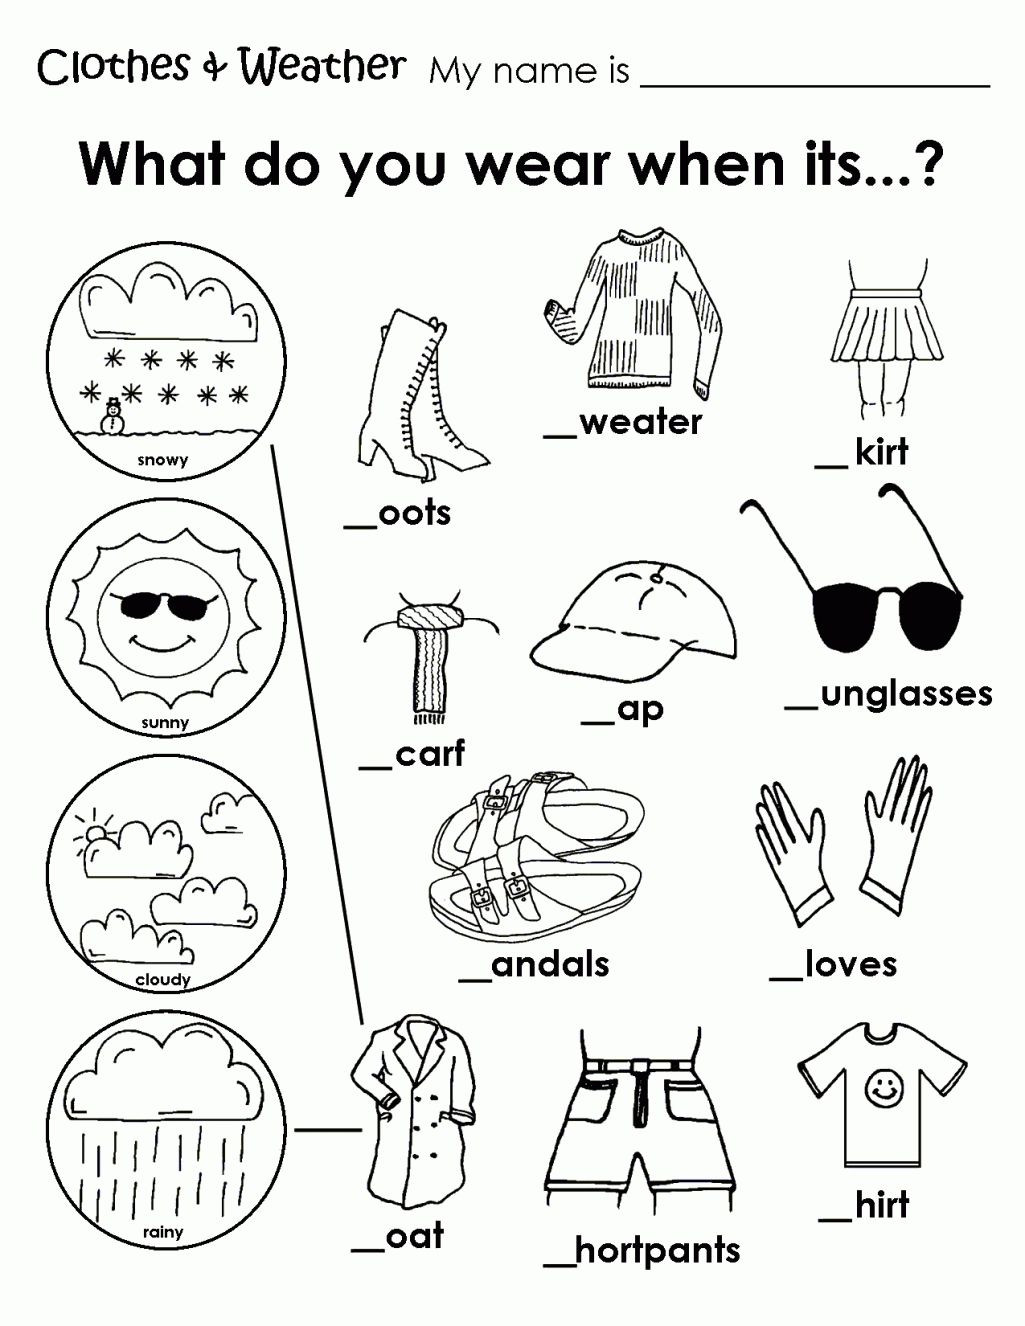 Weather Worksheets for 2nd Grade Printable Weather Clothes Worksheet